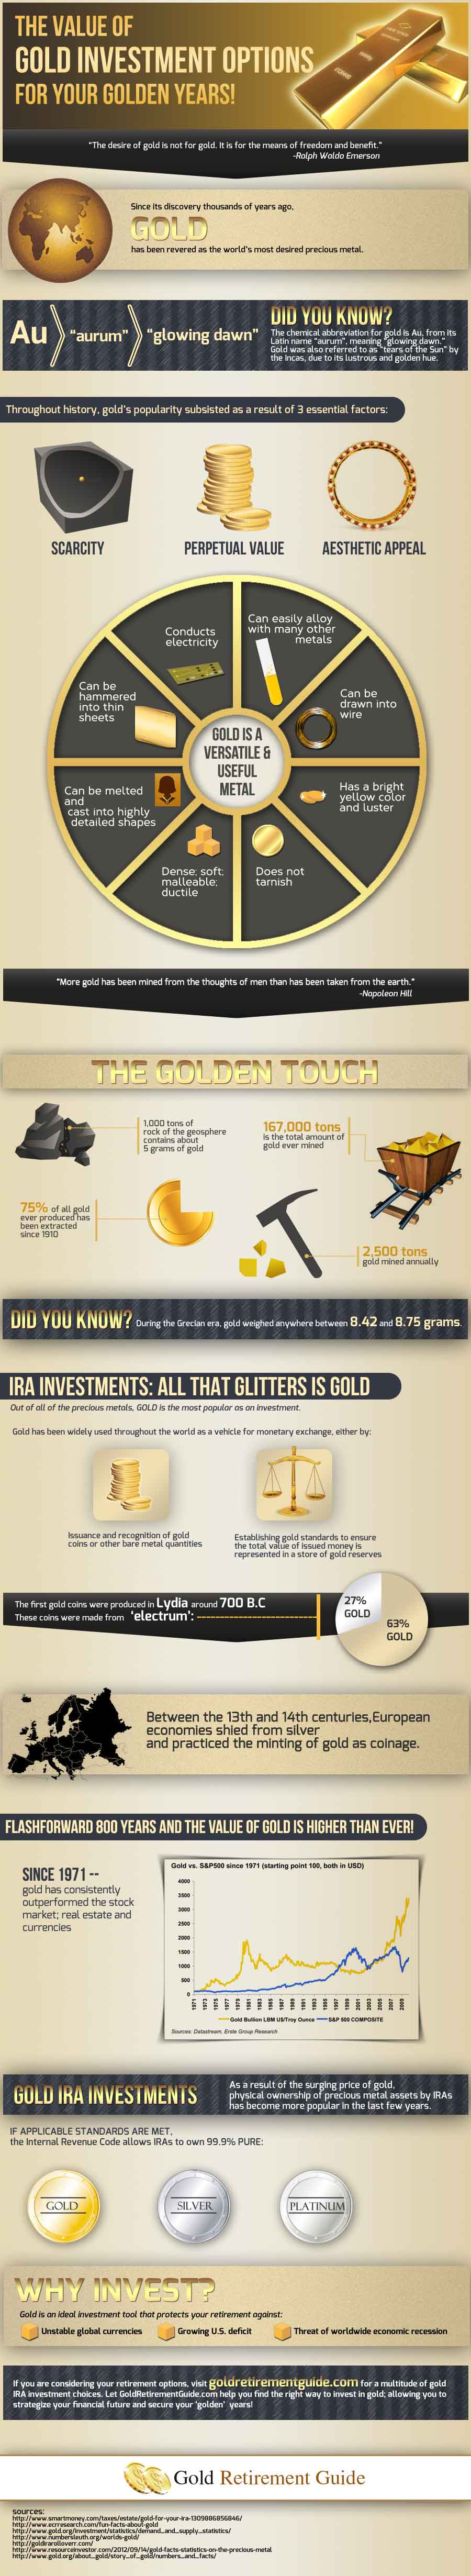 the-value-of-gold-investment-option-for-your-golden-years_51e54c5b9d0f5